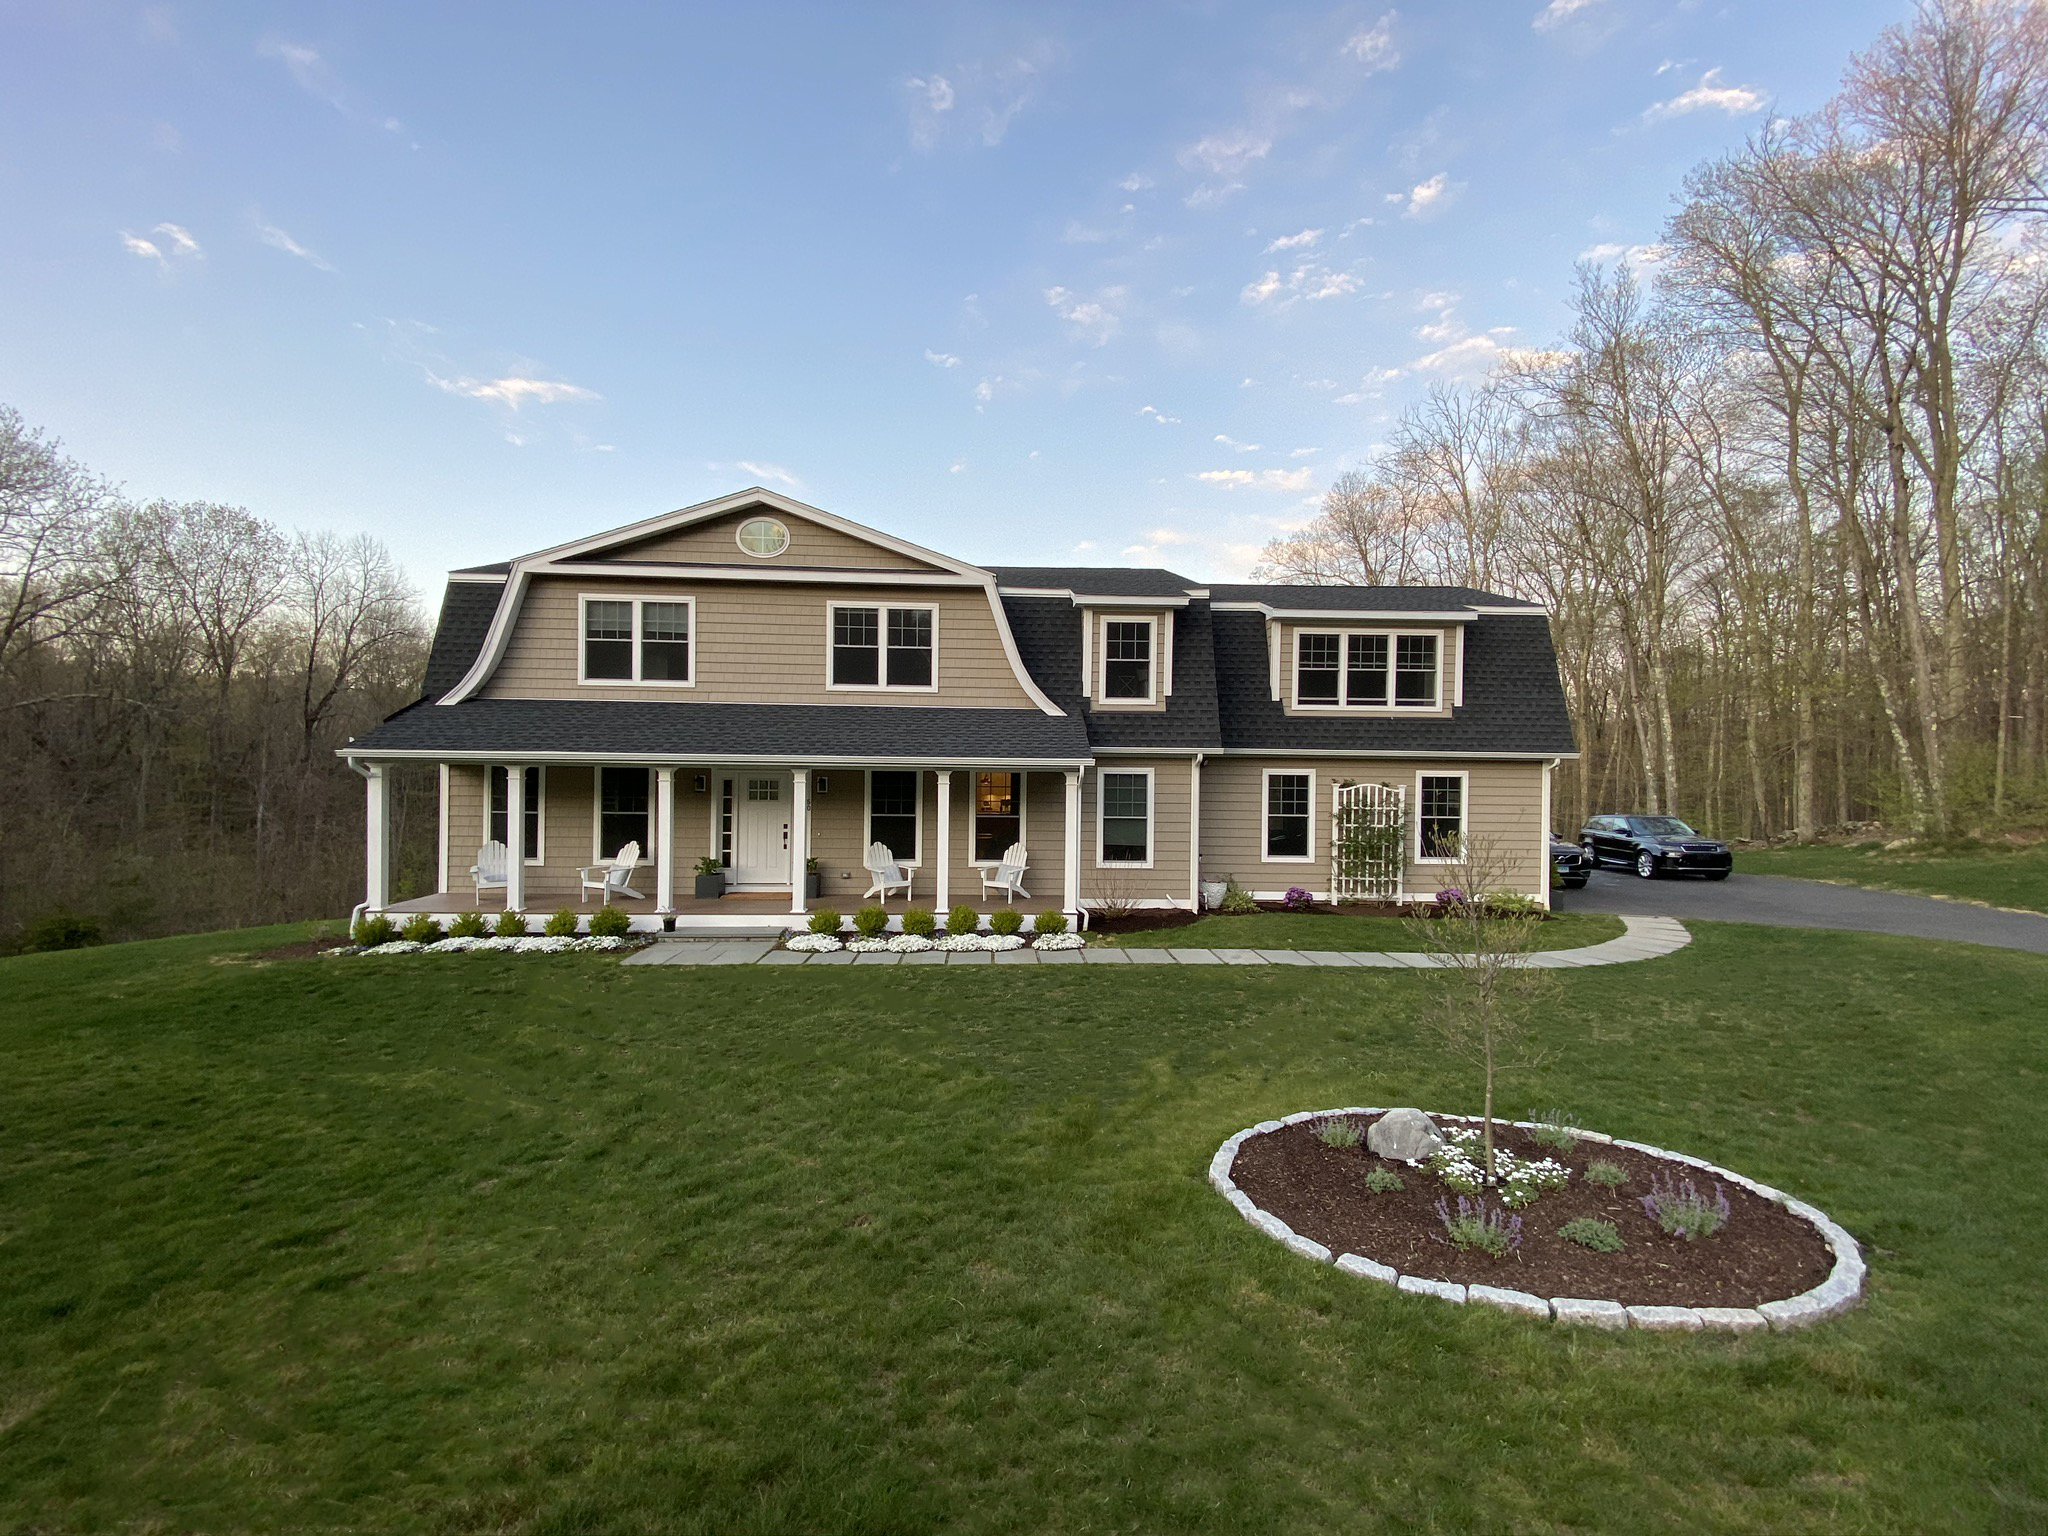 2700 sq ft. colonial house remodel